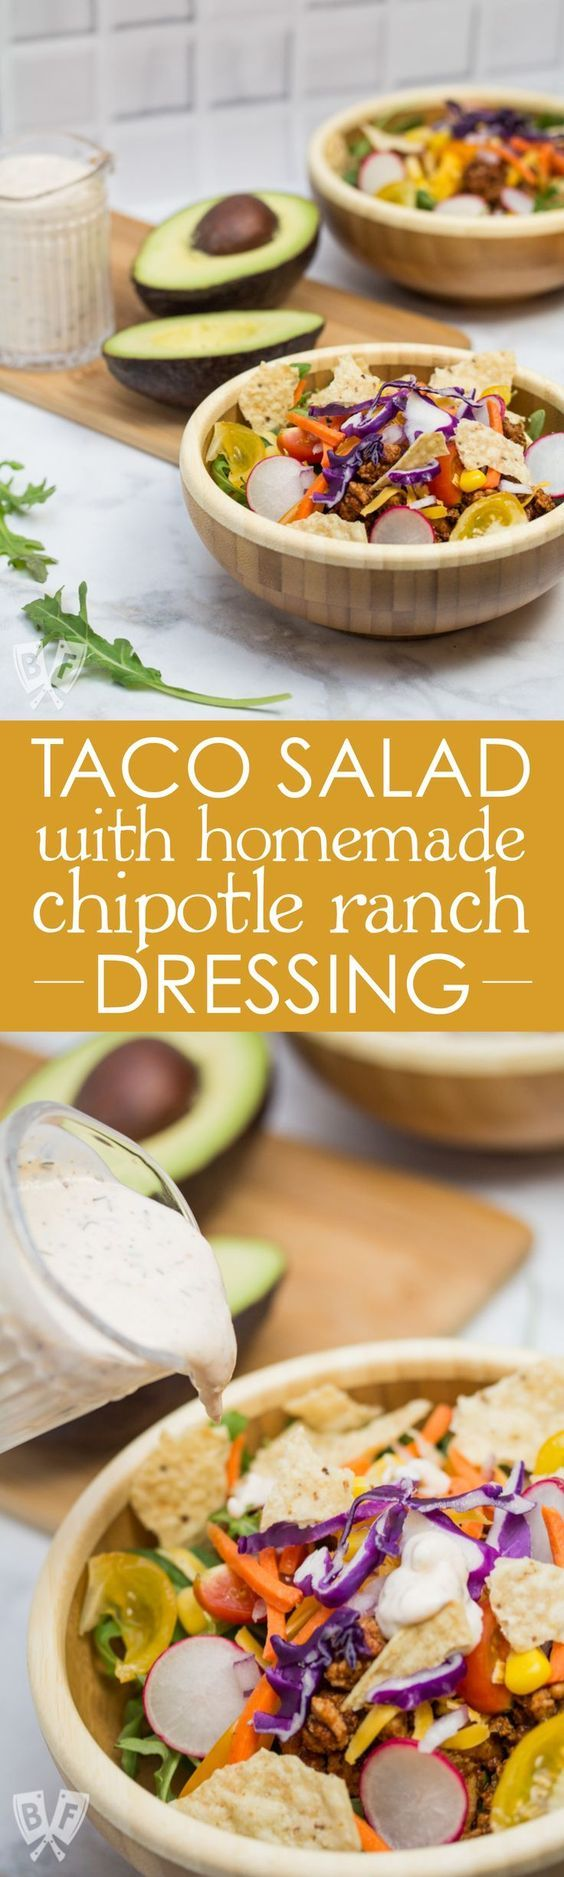 Taco Salad with Homemade Chipotle Ranch Dressing ~ A healthier spin on Taco Tuesday that still packs lots of Mexican flavor! The homemade taco seasoning and chipotle ranch come together in a snap!